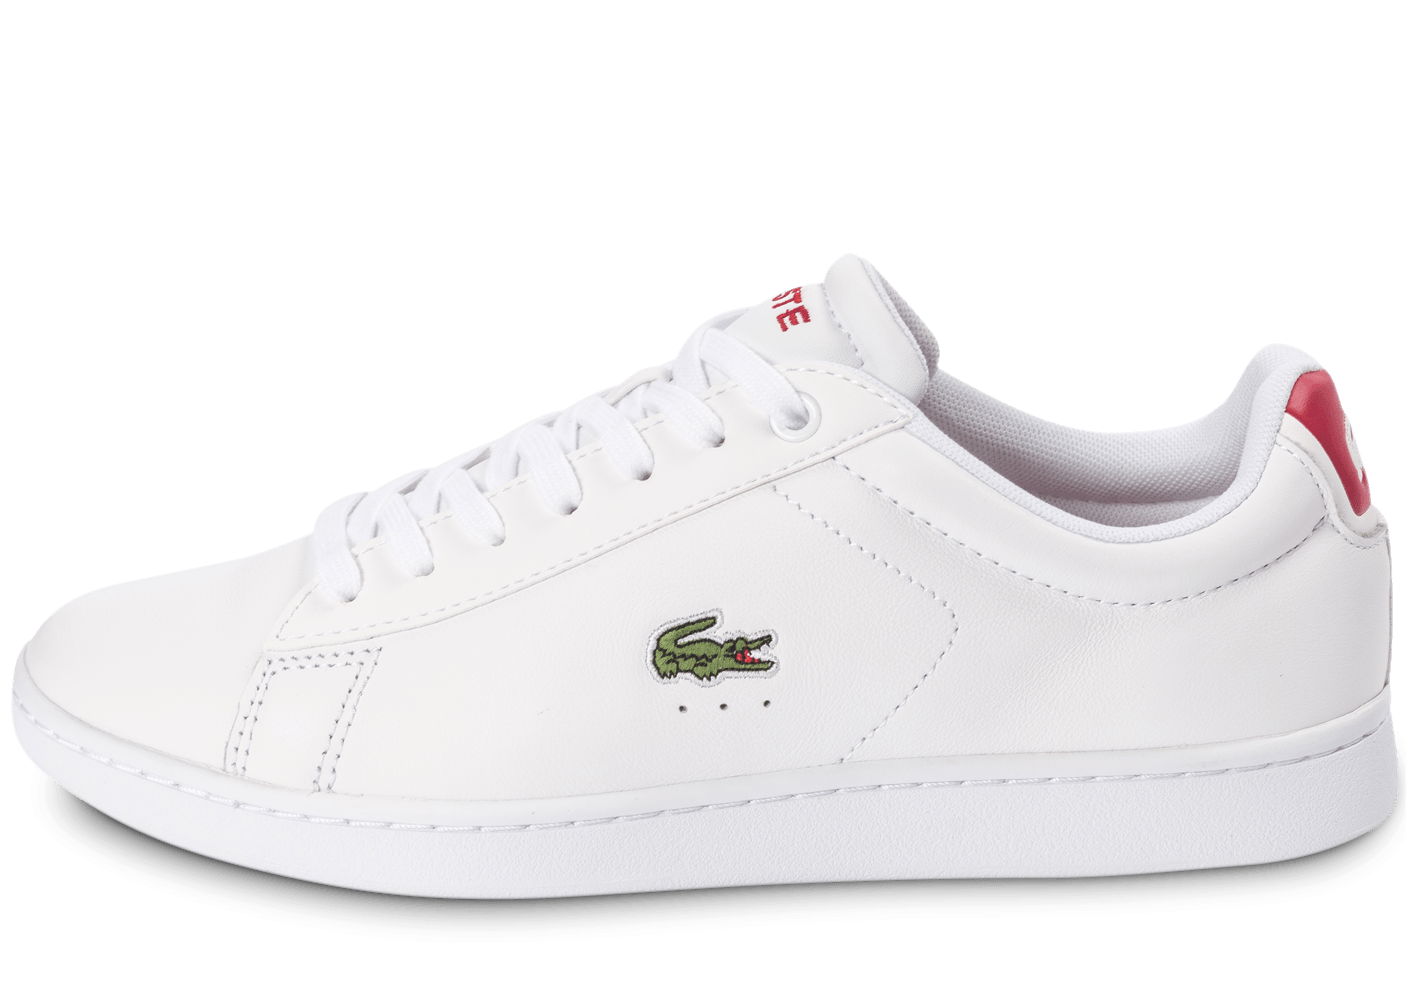 bbfaeb6861 Lacoste Carnaby EL blanche et rouge - Chaussures Baskets homme - Chausport